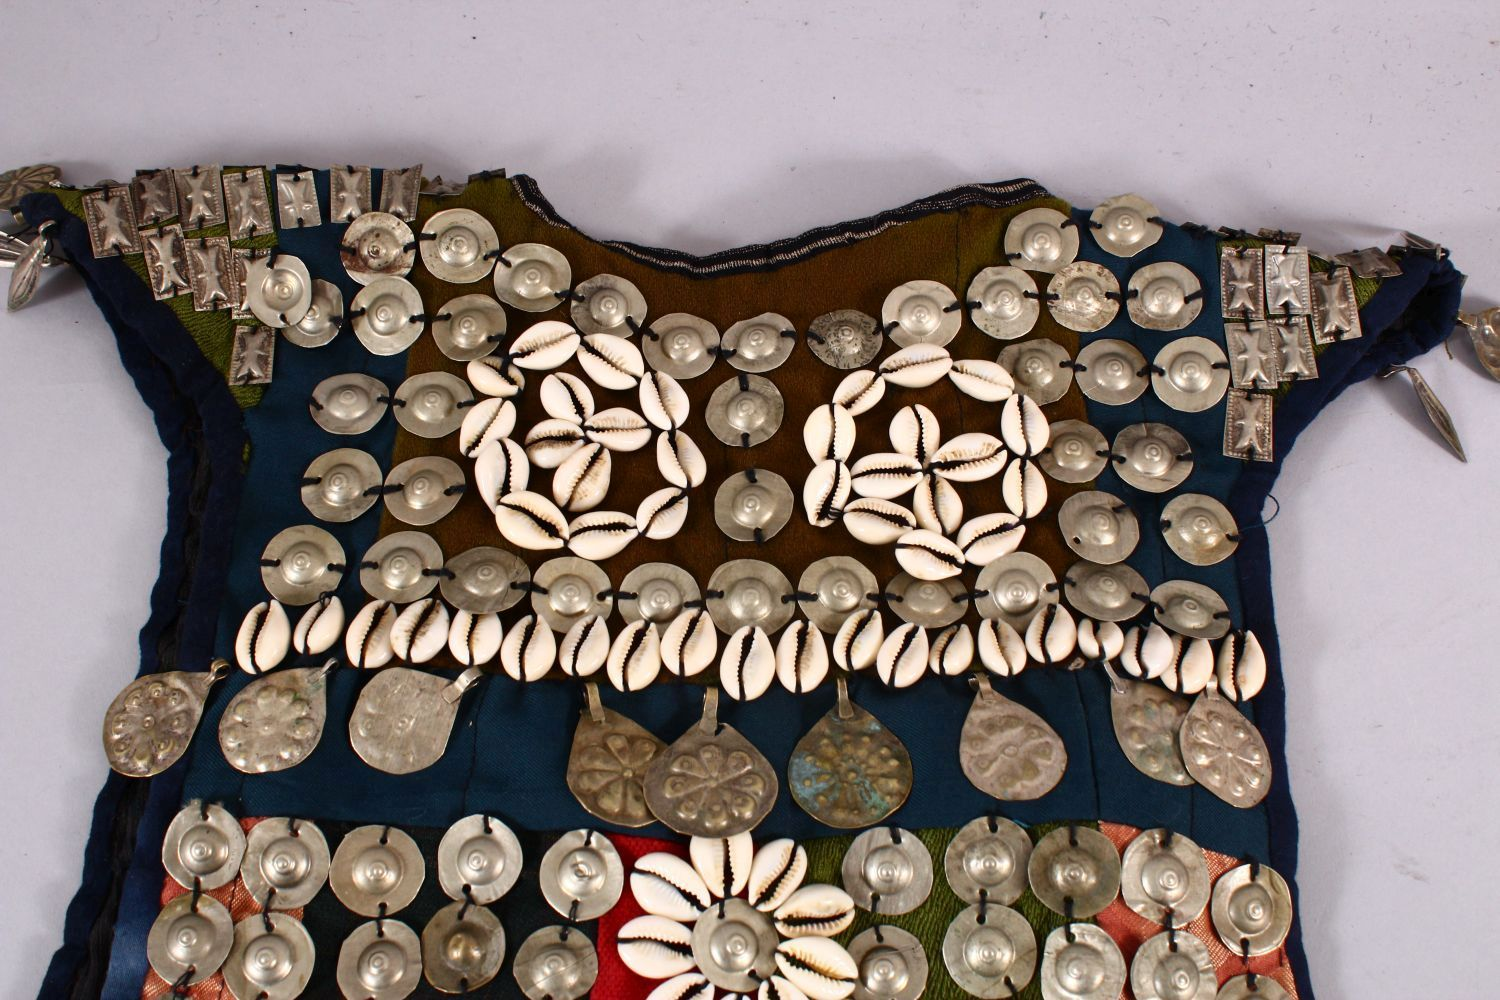 A 19TH CENTURY TURKISH SILVER ONLAID CHILDS DRESS, with silver roundel and shell applications. - Image 3 of 7